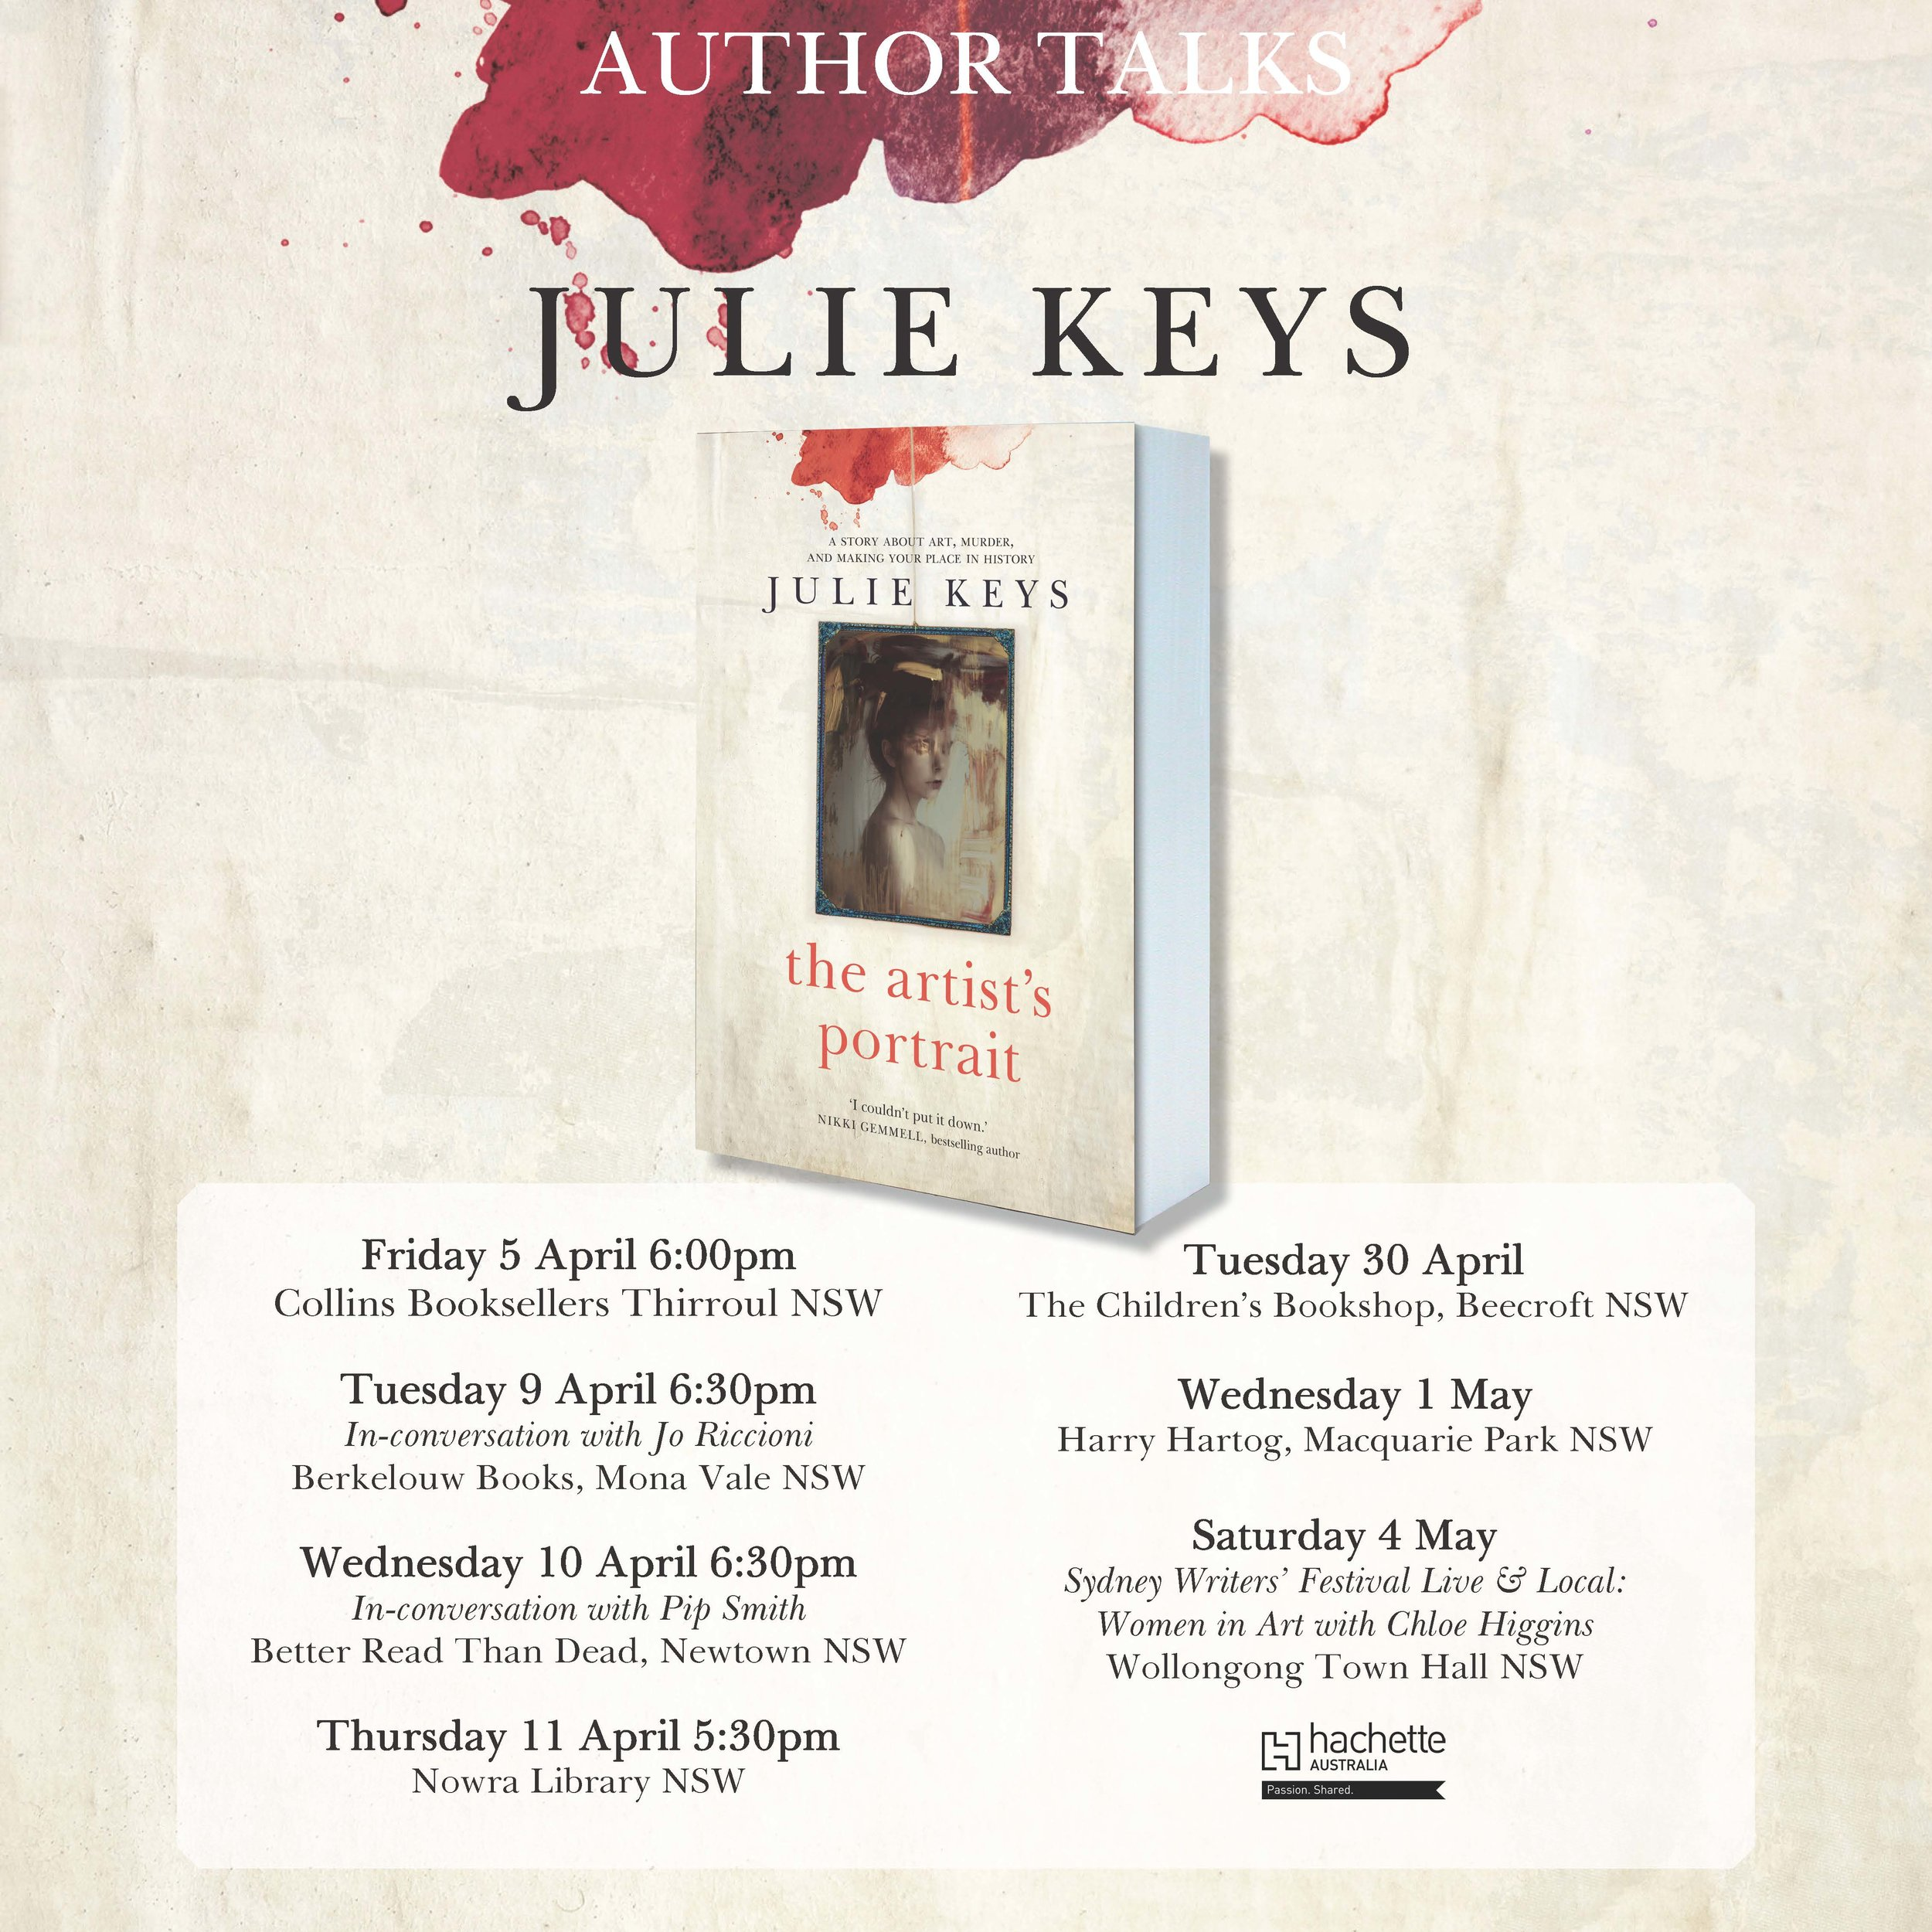 Julie Keys events[9416].jpg